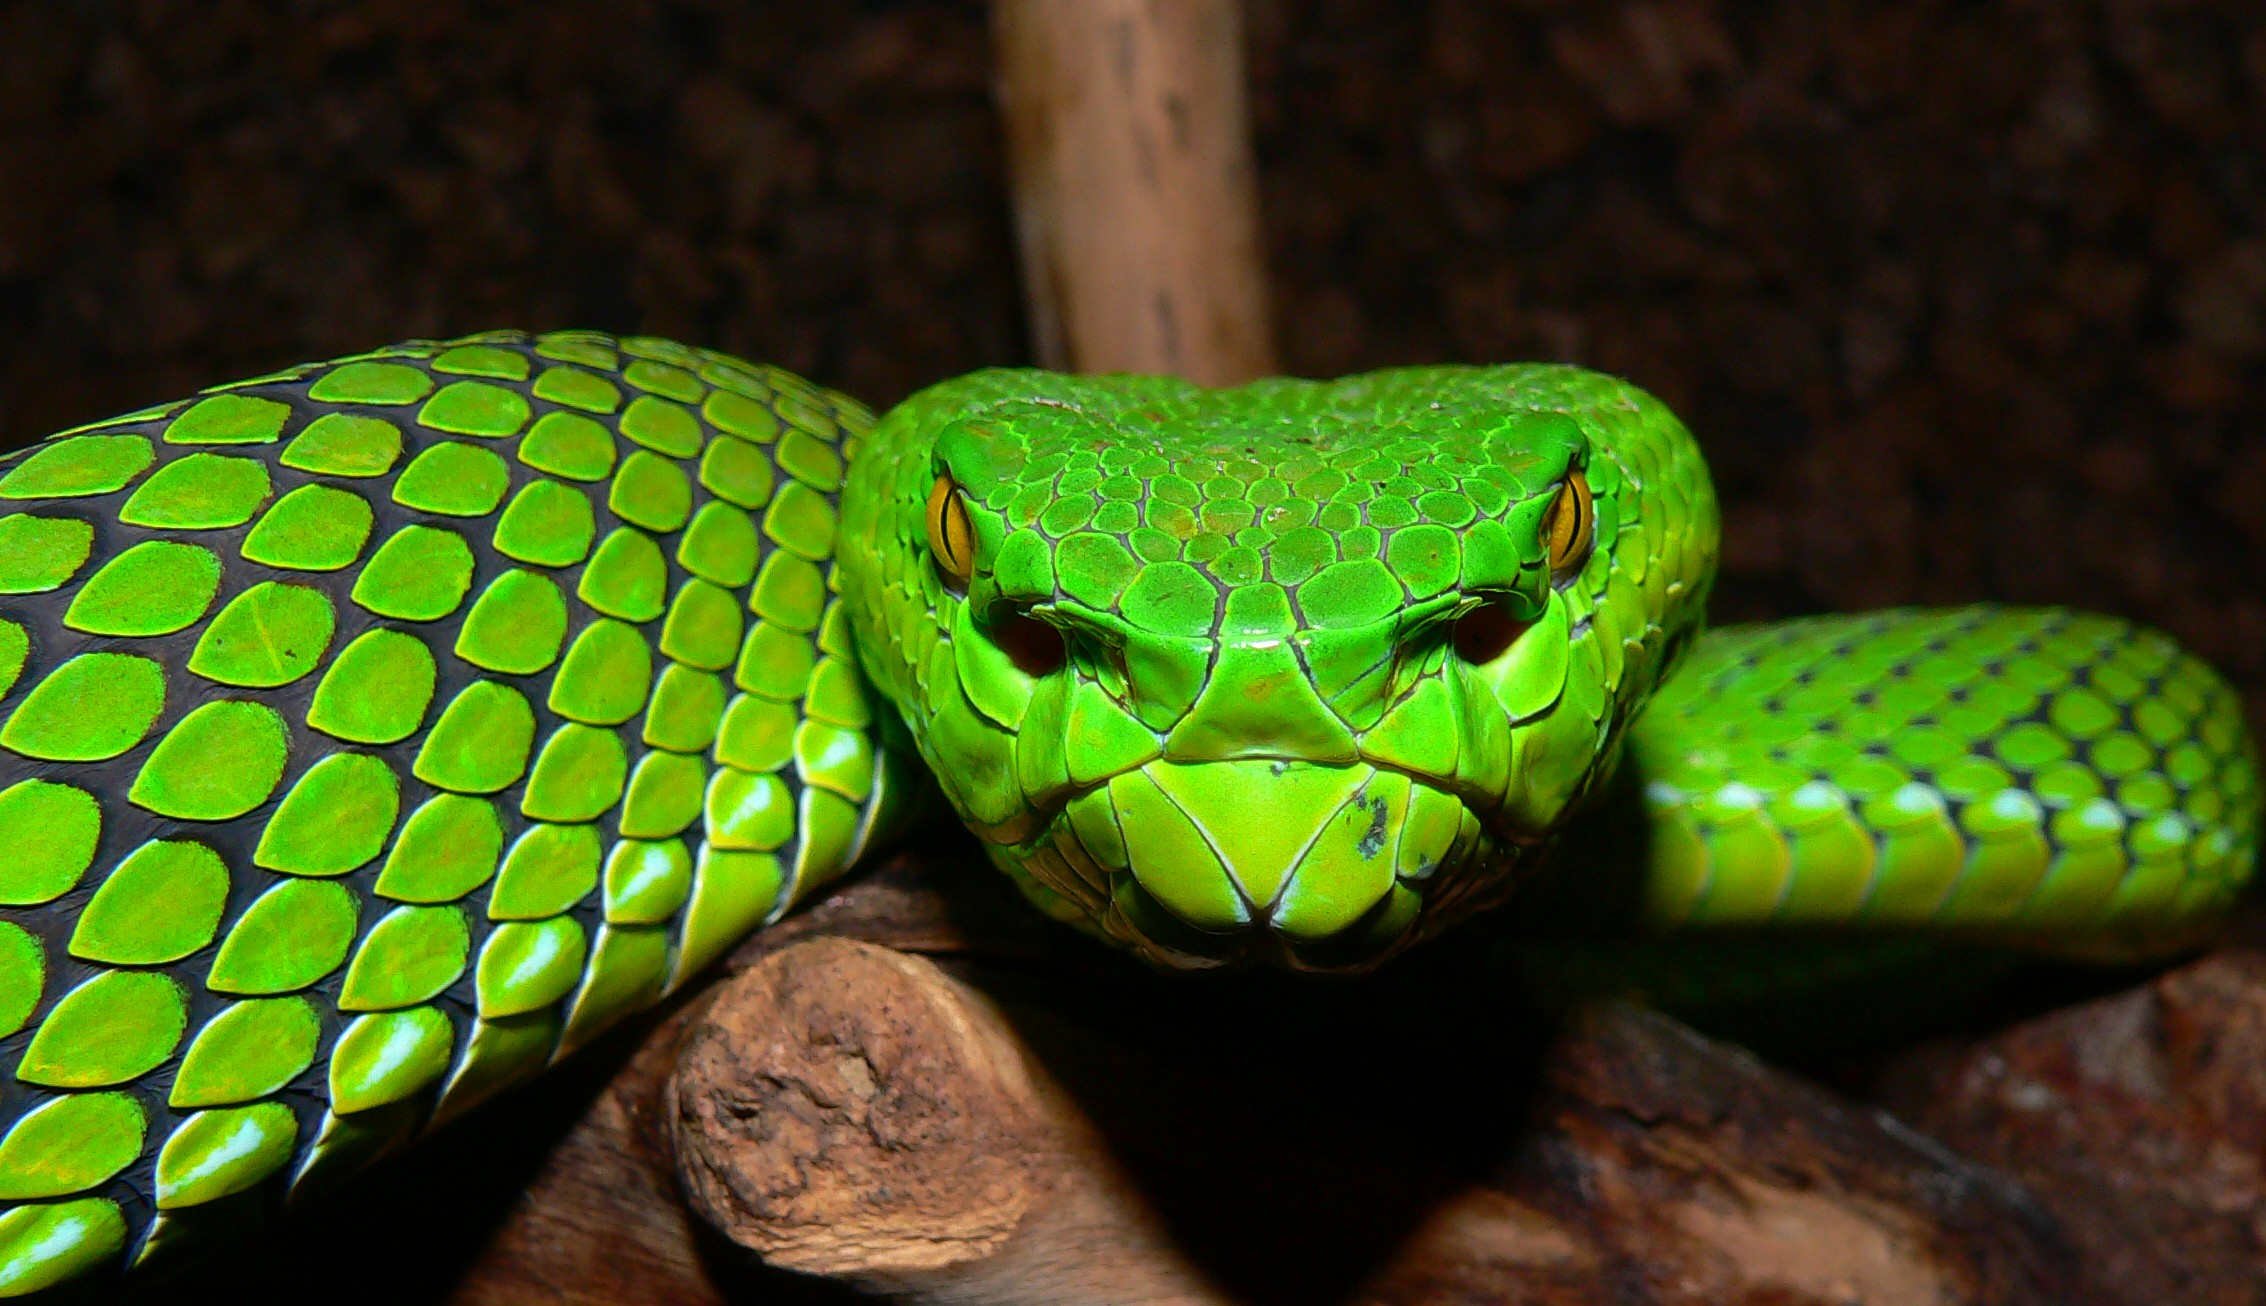 Green Pit Viper coloring #17, Download drawings